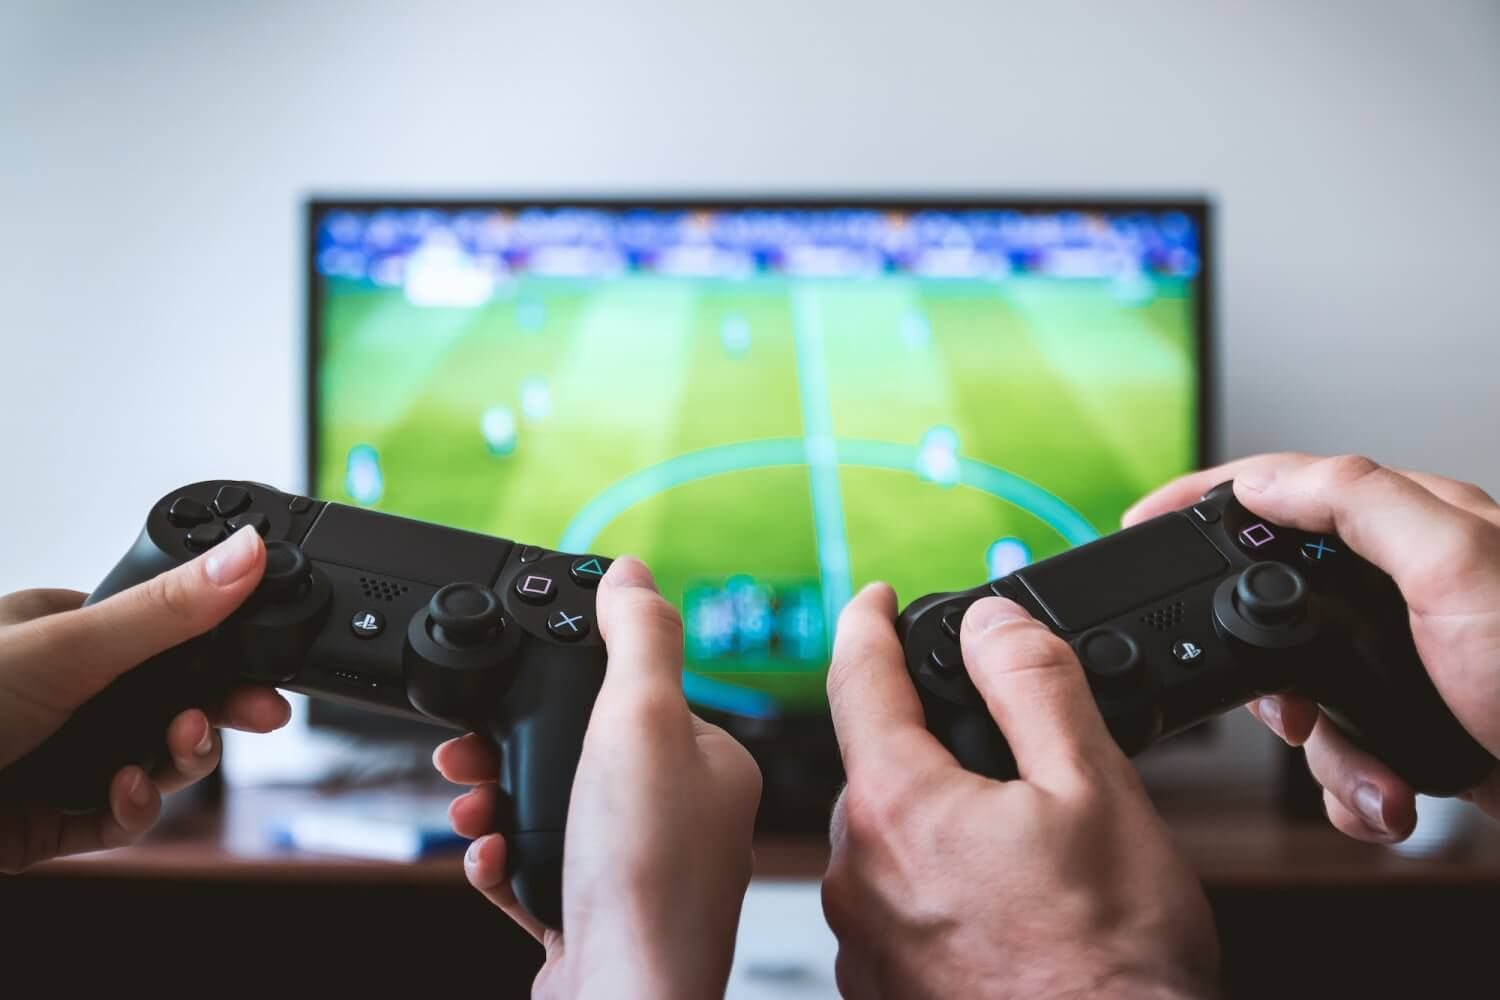 Two hands holding games console controllers in front of a TV screen